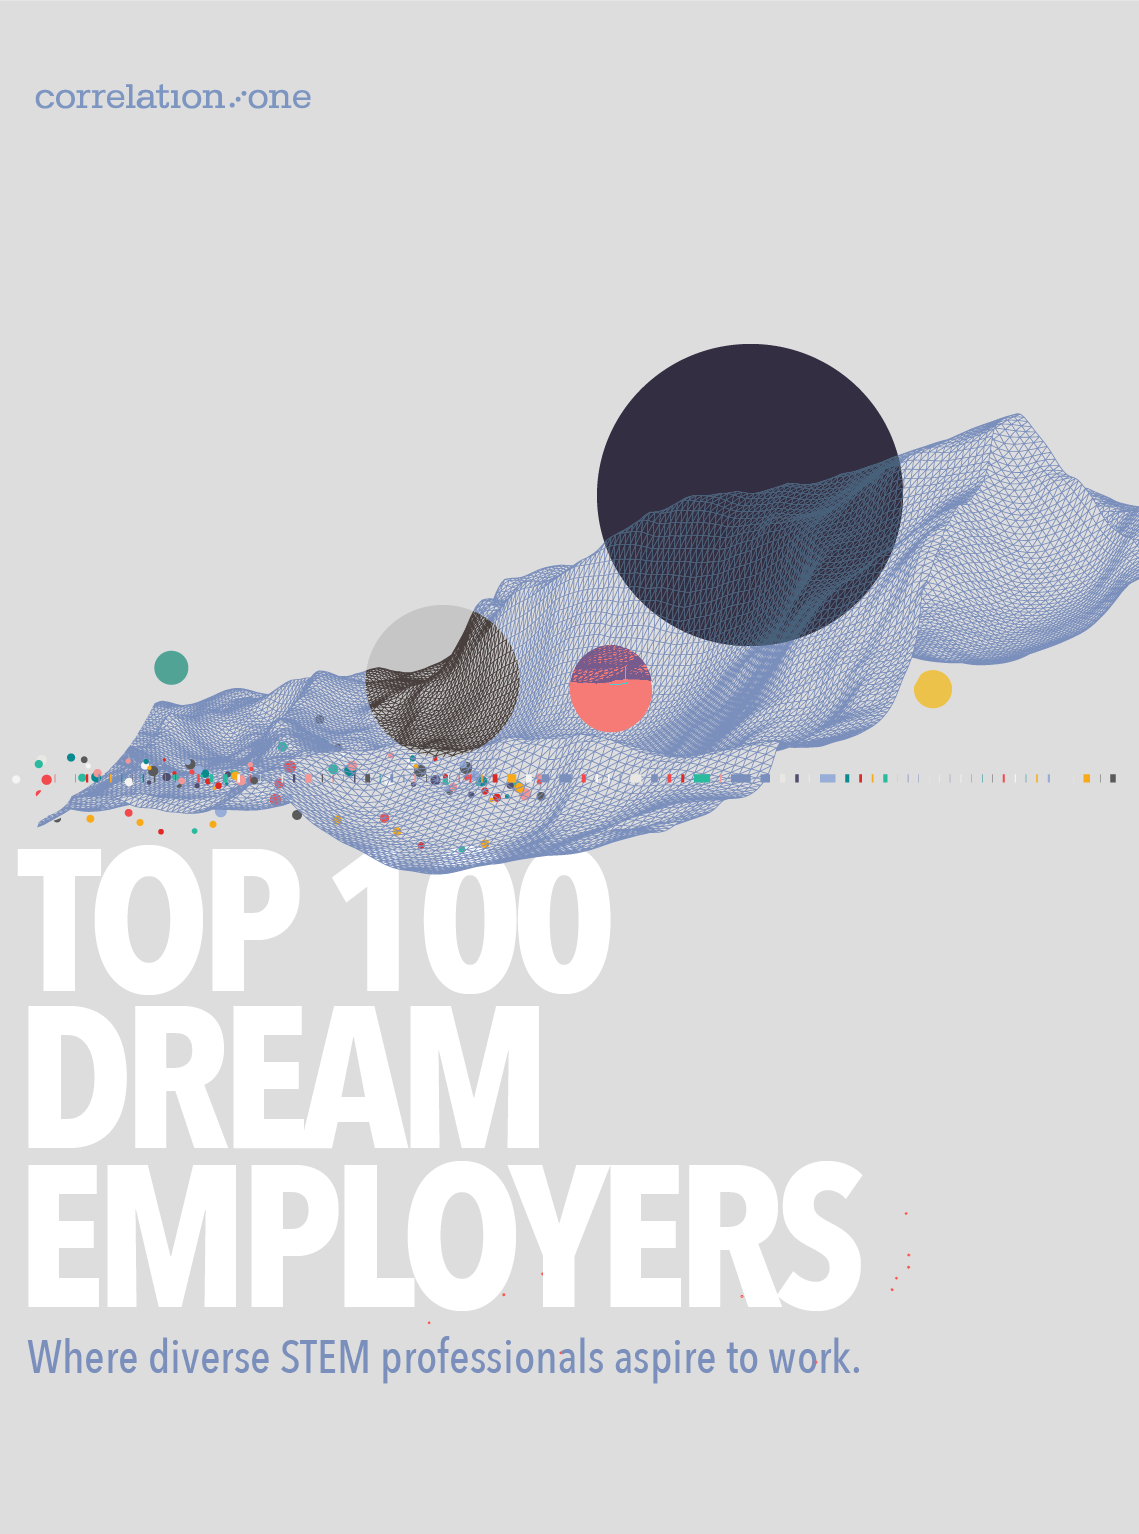 Hire data science talent. Data Science Hiring. Top 100 Dream Employers: Where Diverse STEM Professionals Aspire to Work